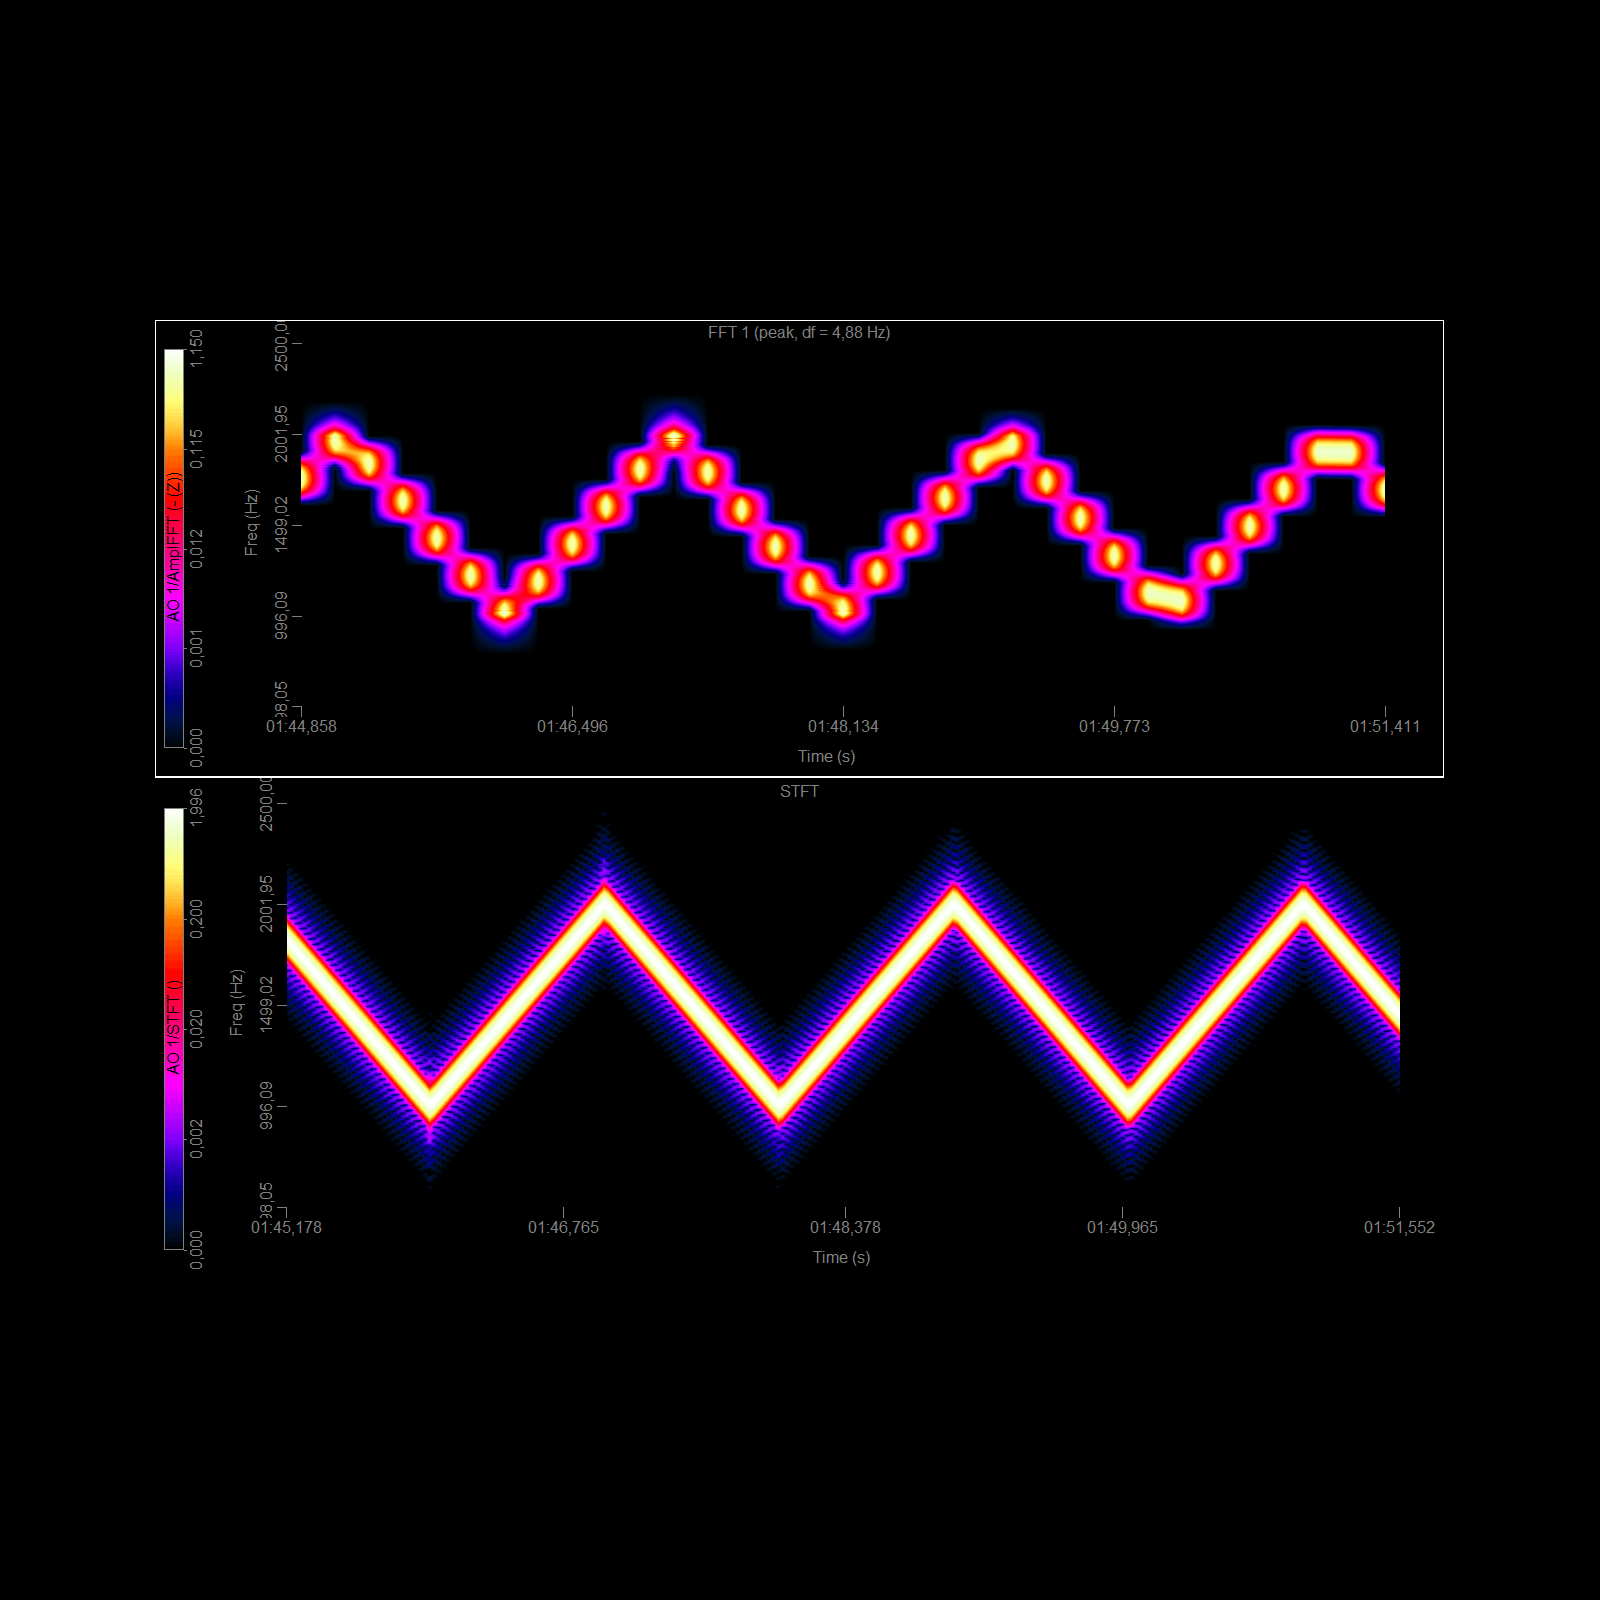 Short-time Fourier Transform (STFT)